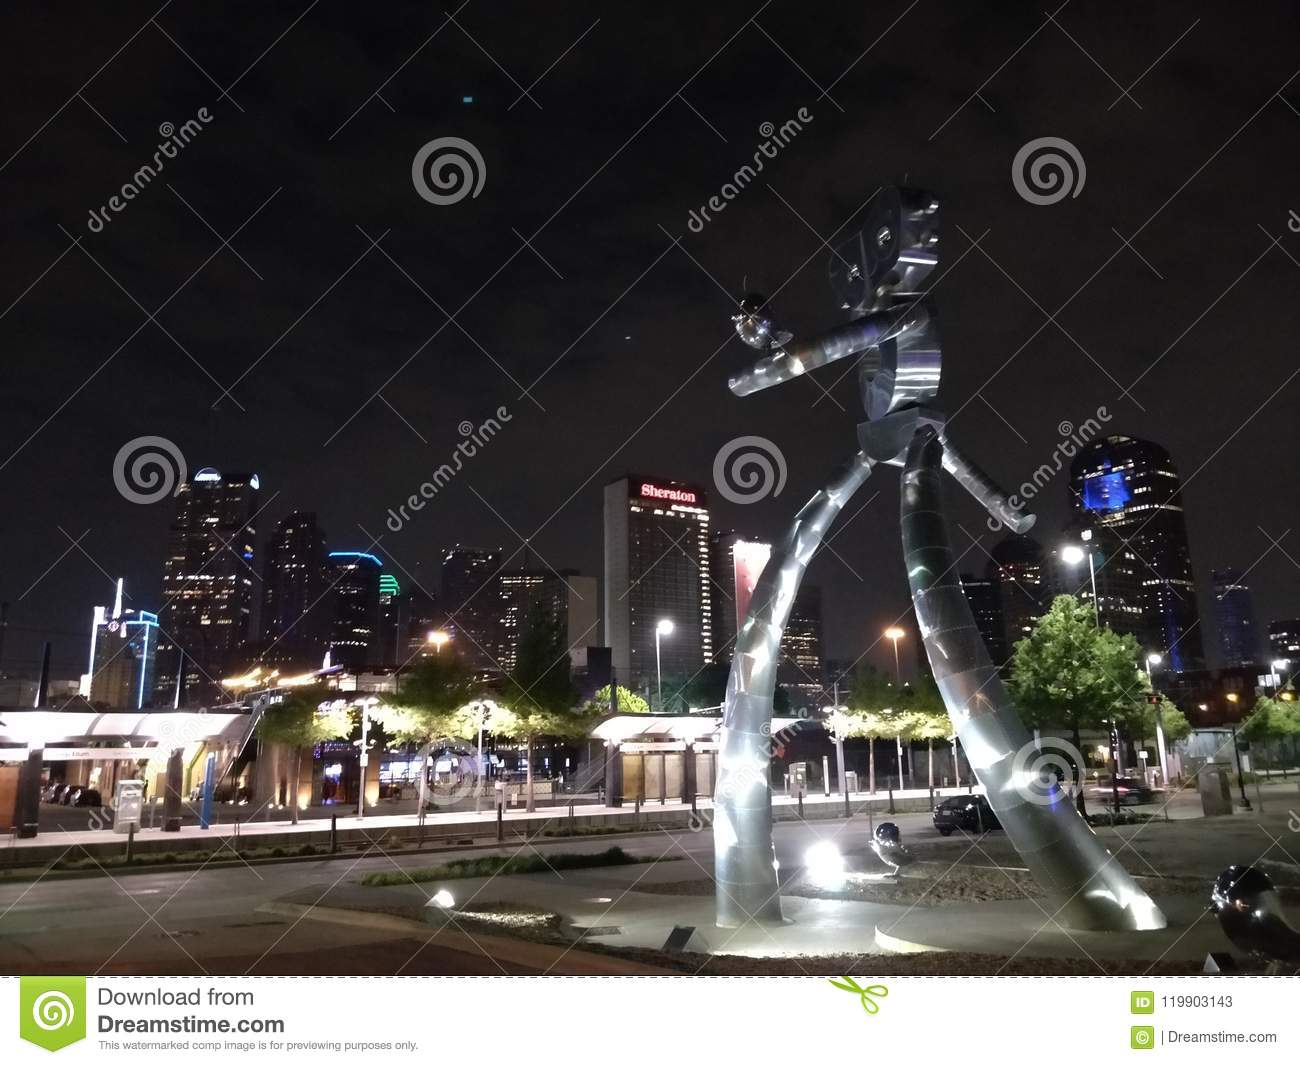 Dallas, Tx skyline with robot